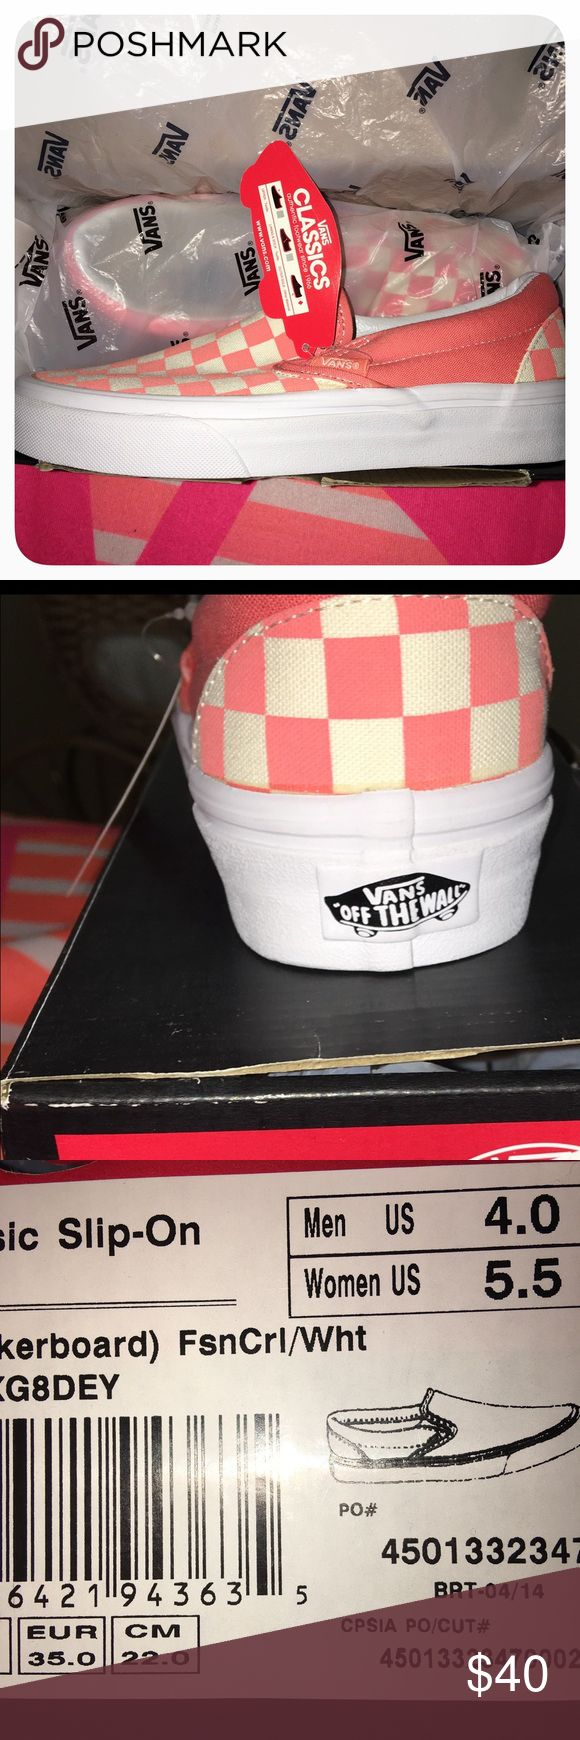 Vans Classic Slip On Checkerboard Print In box Vans Checkerboard Slip On Sneakers Men's size 4 Women's size 5.5 Vans Shoes Sneakers